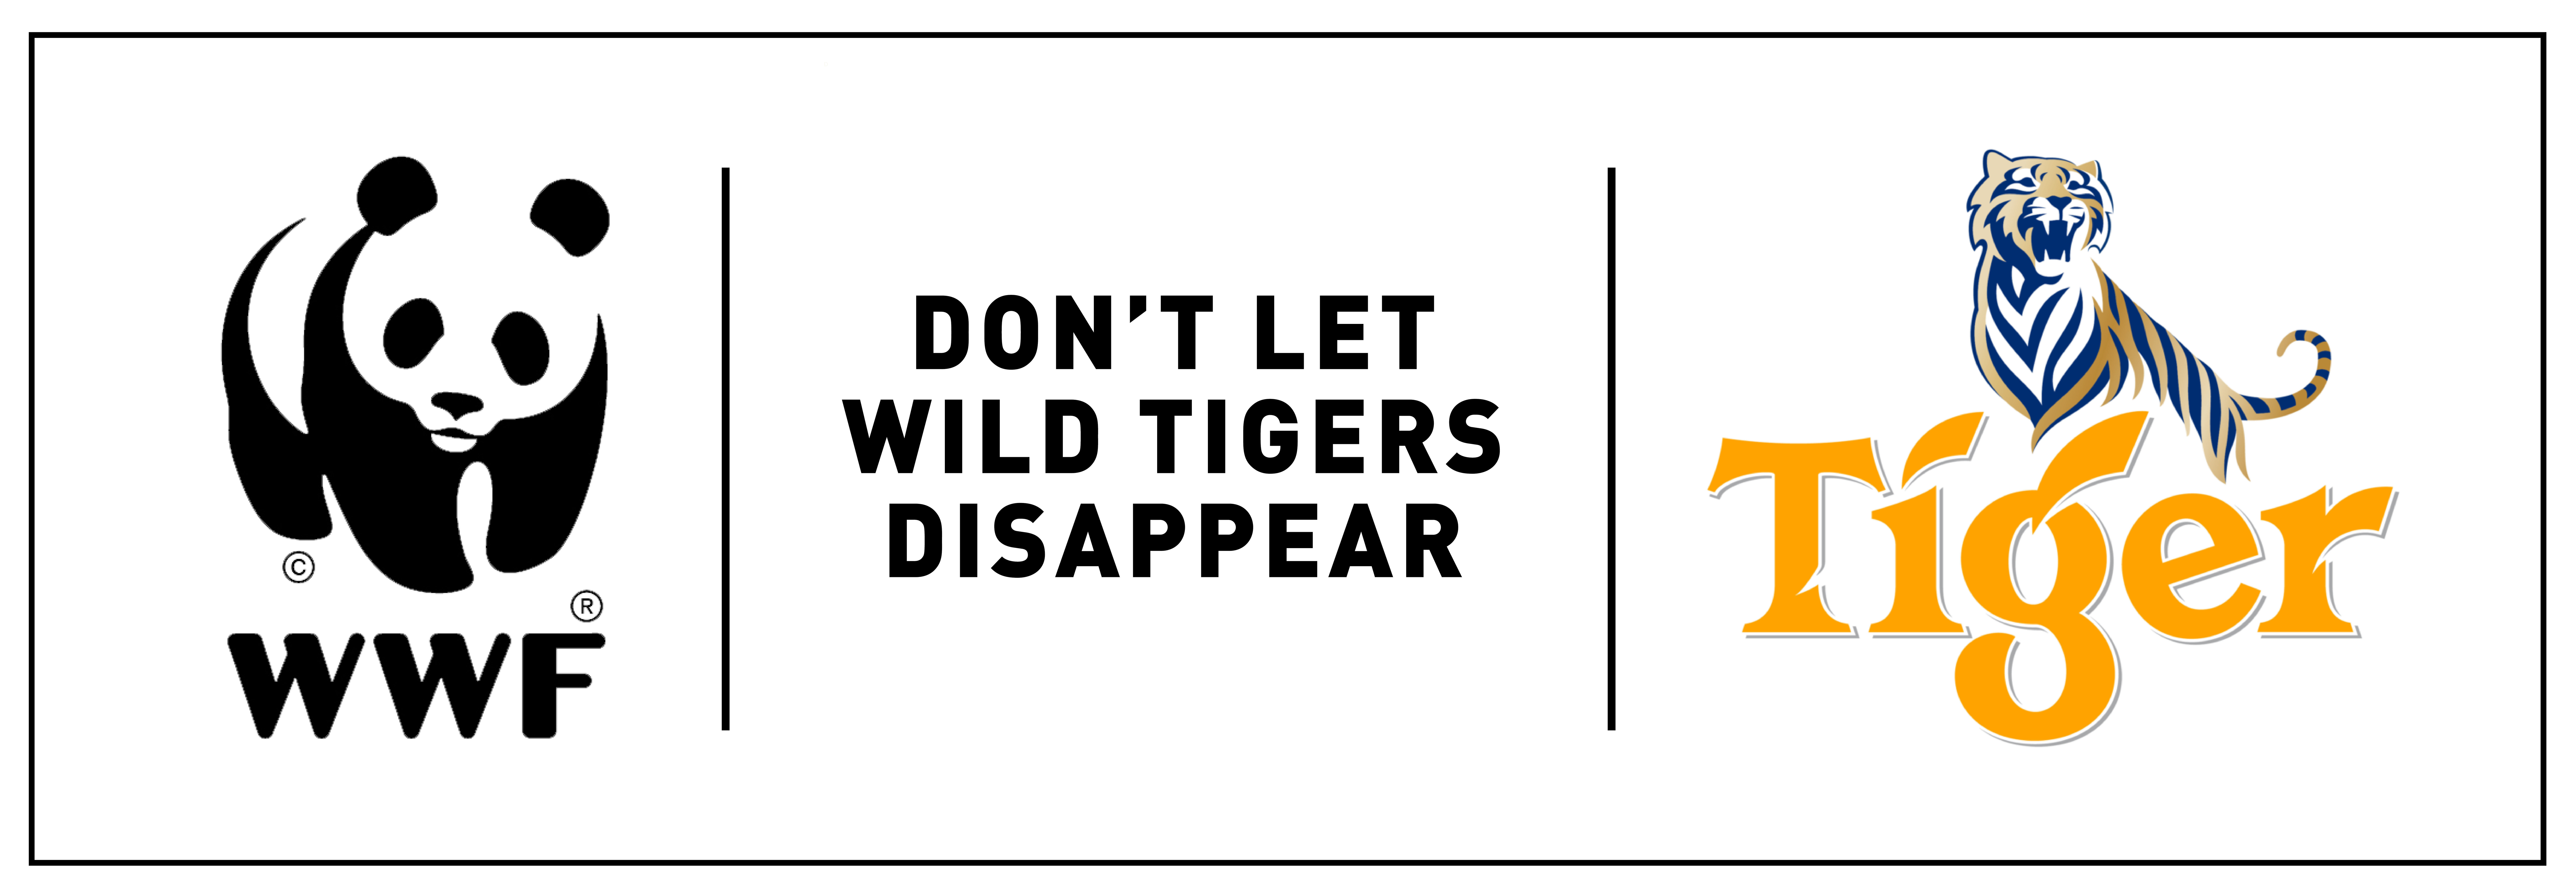 CLICK HERE TO TAKE ACTION AGAINST ILLEGAL TIGER TRADE